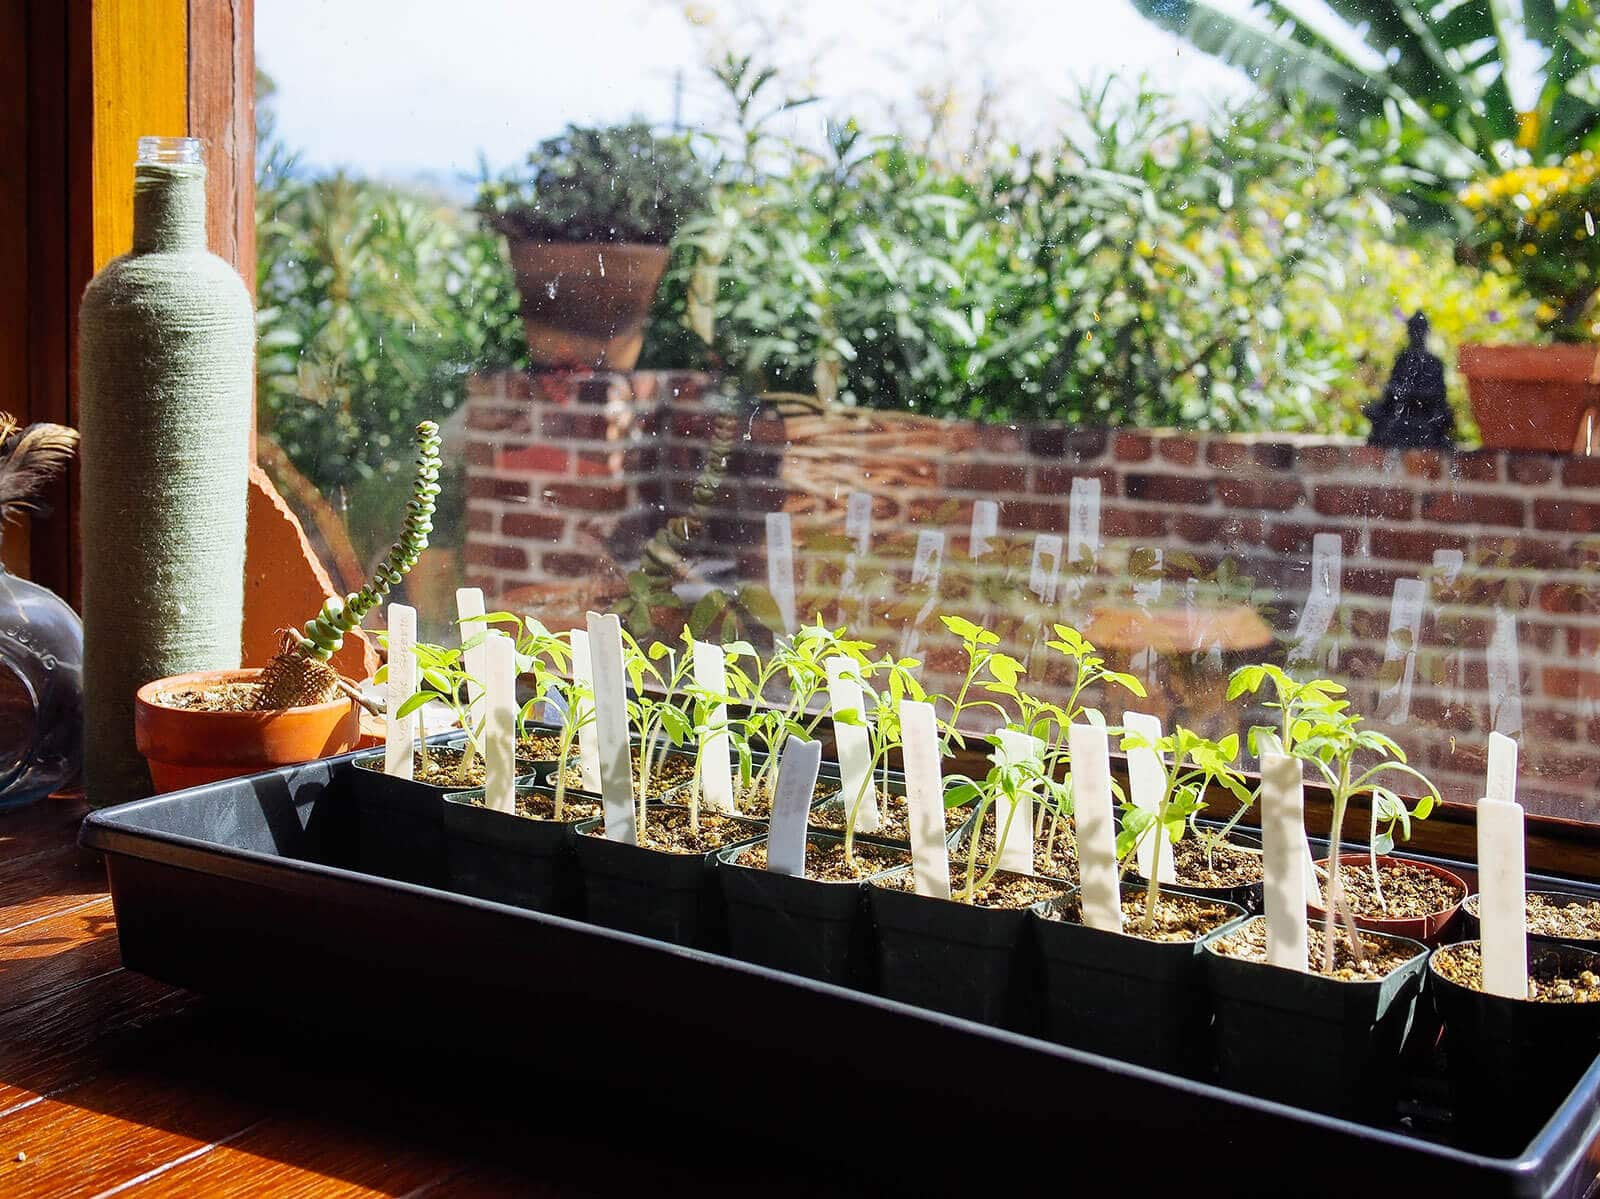 Indoor seedlings need to be acclimated to the outdoors before being transplanted